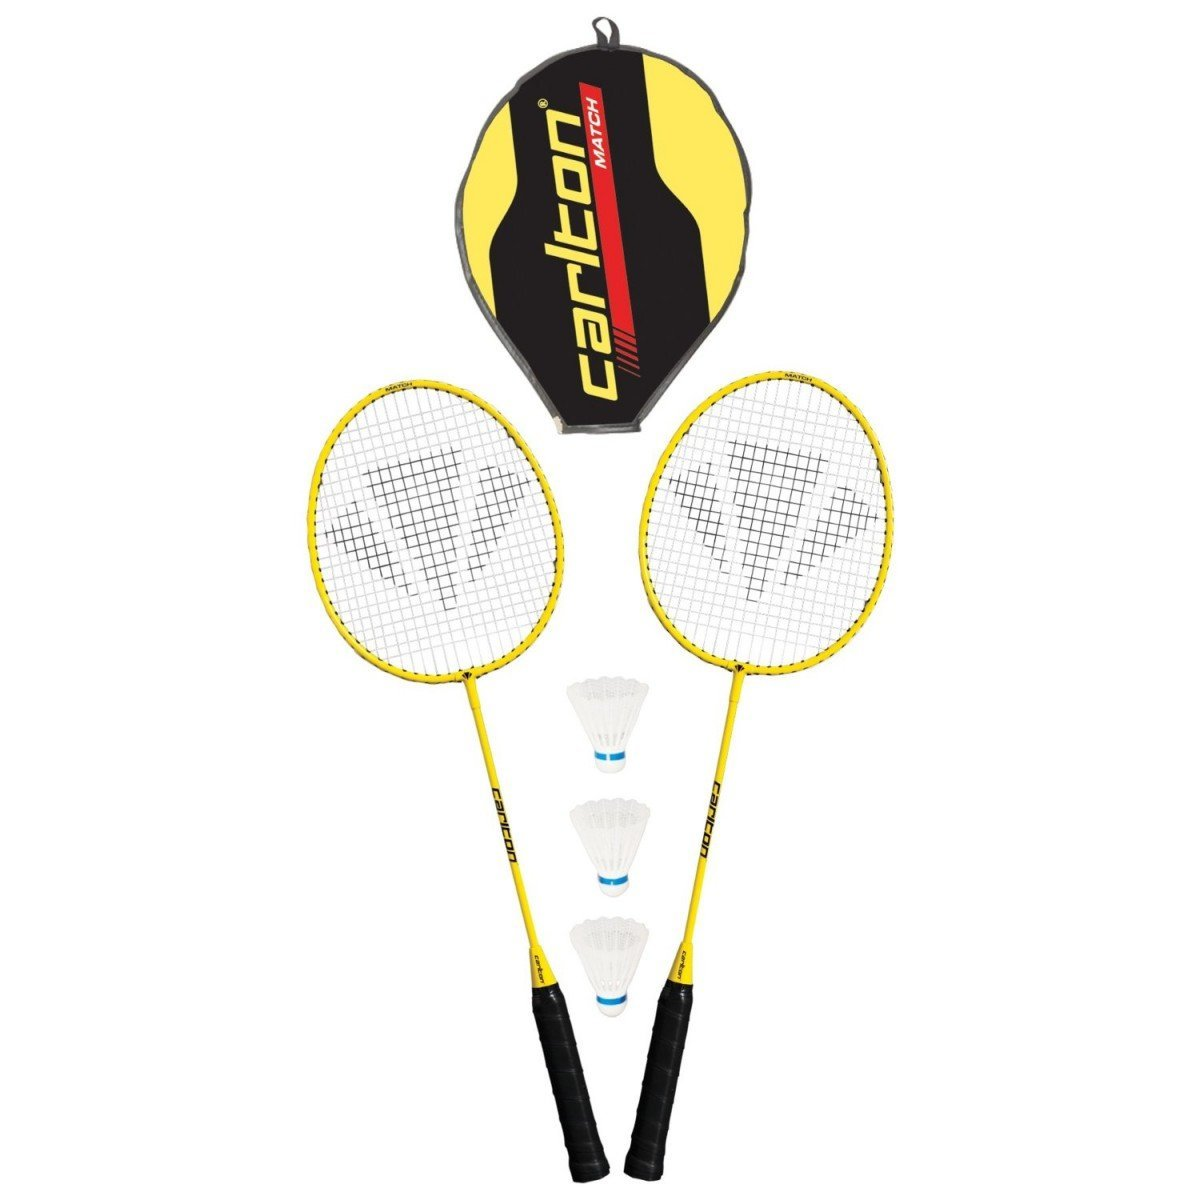 Carlton Match, Diverse, Badminton Set, One size, 113466 Dunlop